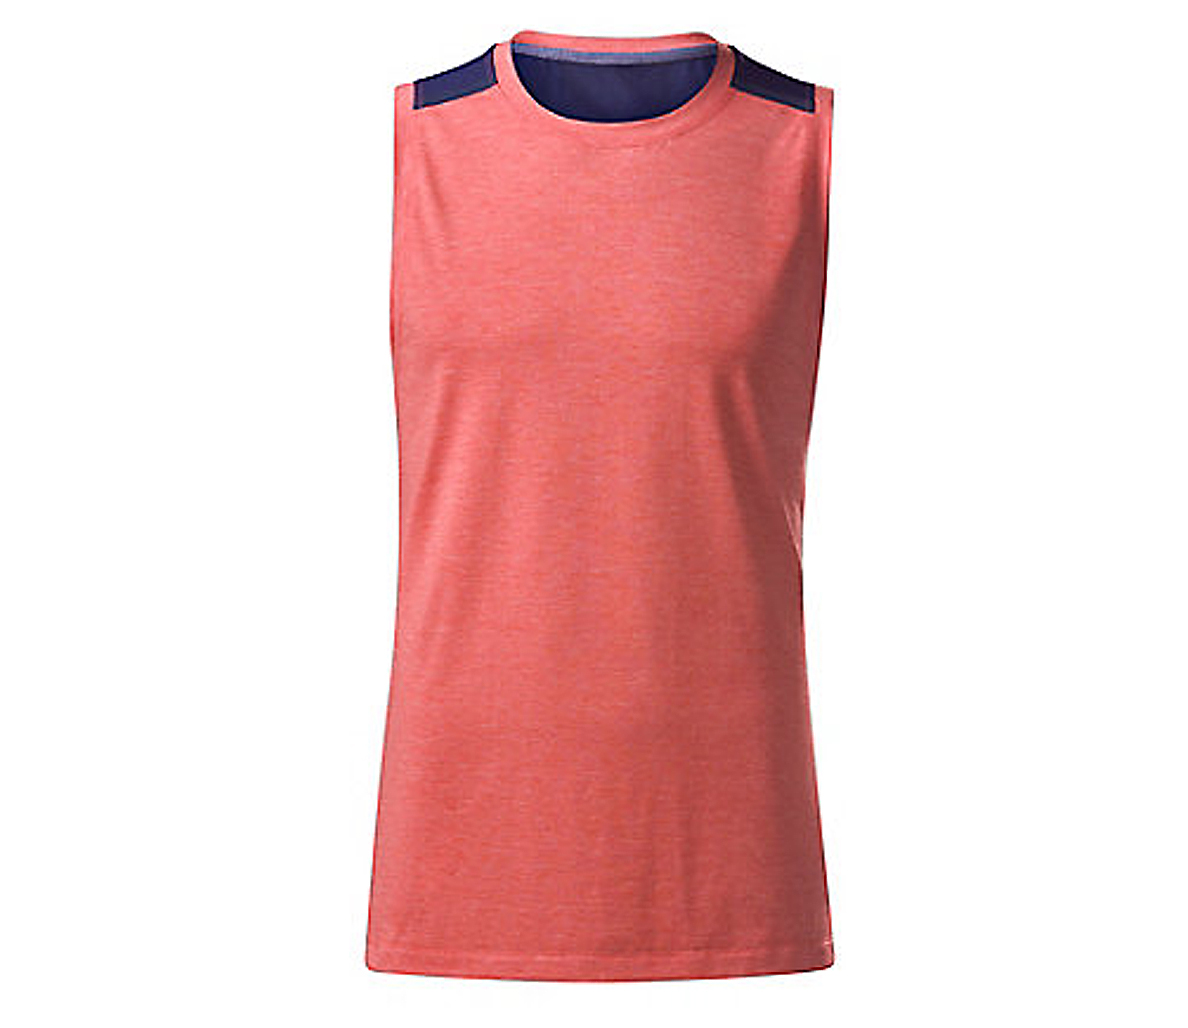 981dc86684ec0 Uniqlo Mens Tank Tops